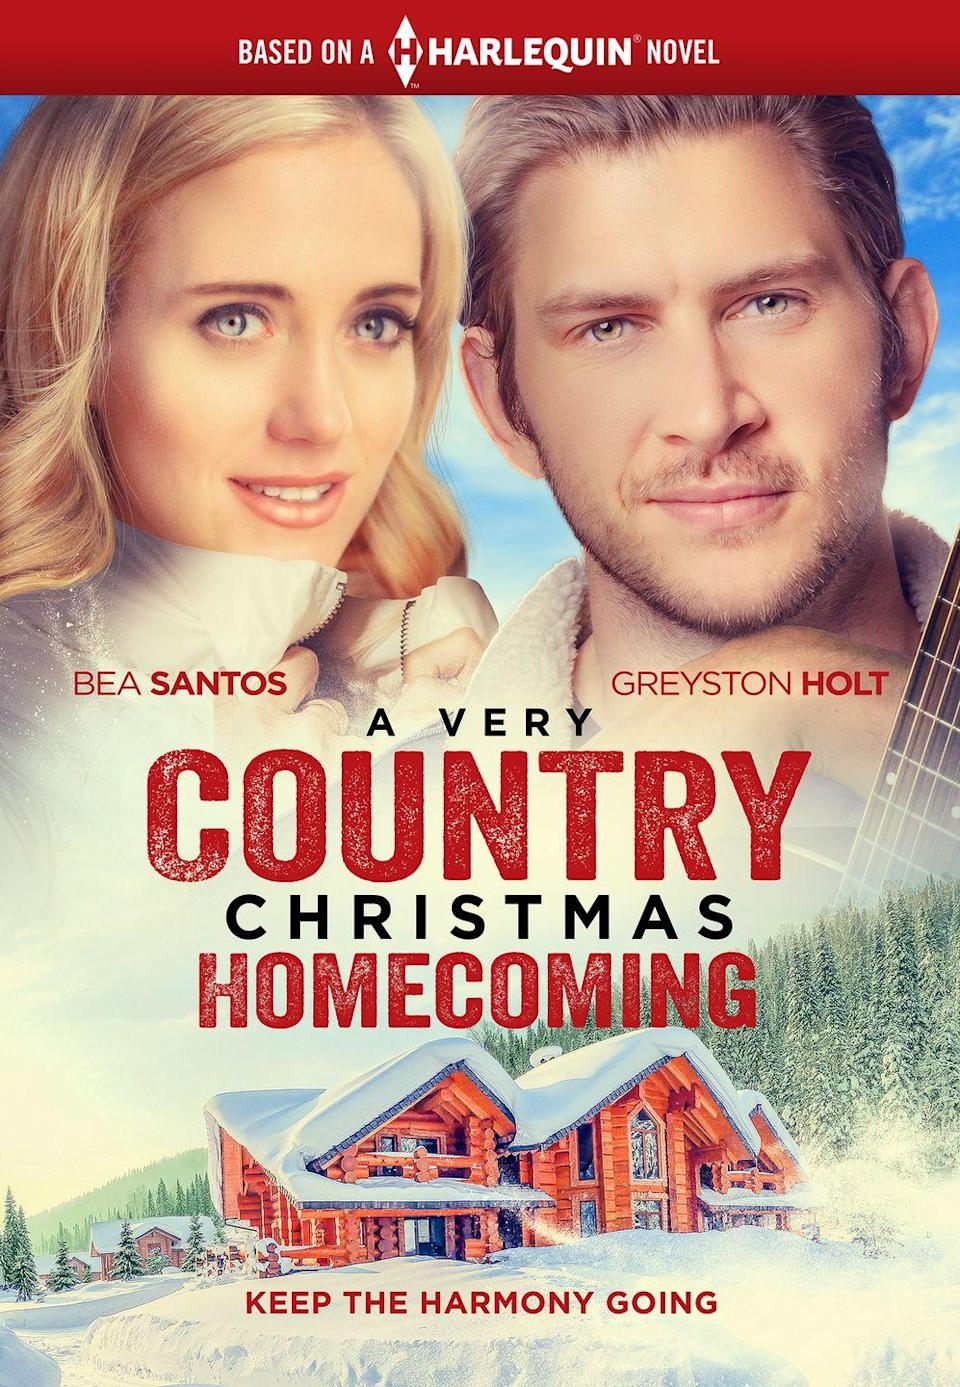 """<p>When a country music star needs a break from fame and returns home for the holidays he, you guessed it, falls in love with a spunky single mom who lives in a small town but has big dreams. Hey, a holiday rom-com can be a li'l predictable and still totally entertaining, k?</p><p><a class=""""link rapid-noclick-resp"""" href=""""https://www.netflix.com/title/81319145"""" rel=""""nofollow noopener"""" target=""""_blank"""" data-ylk=""""slk:Watch Now"""">Watch Now</a></p>"""